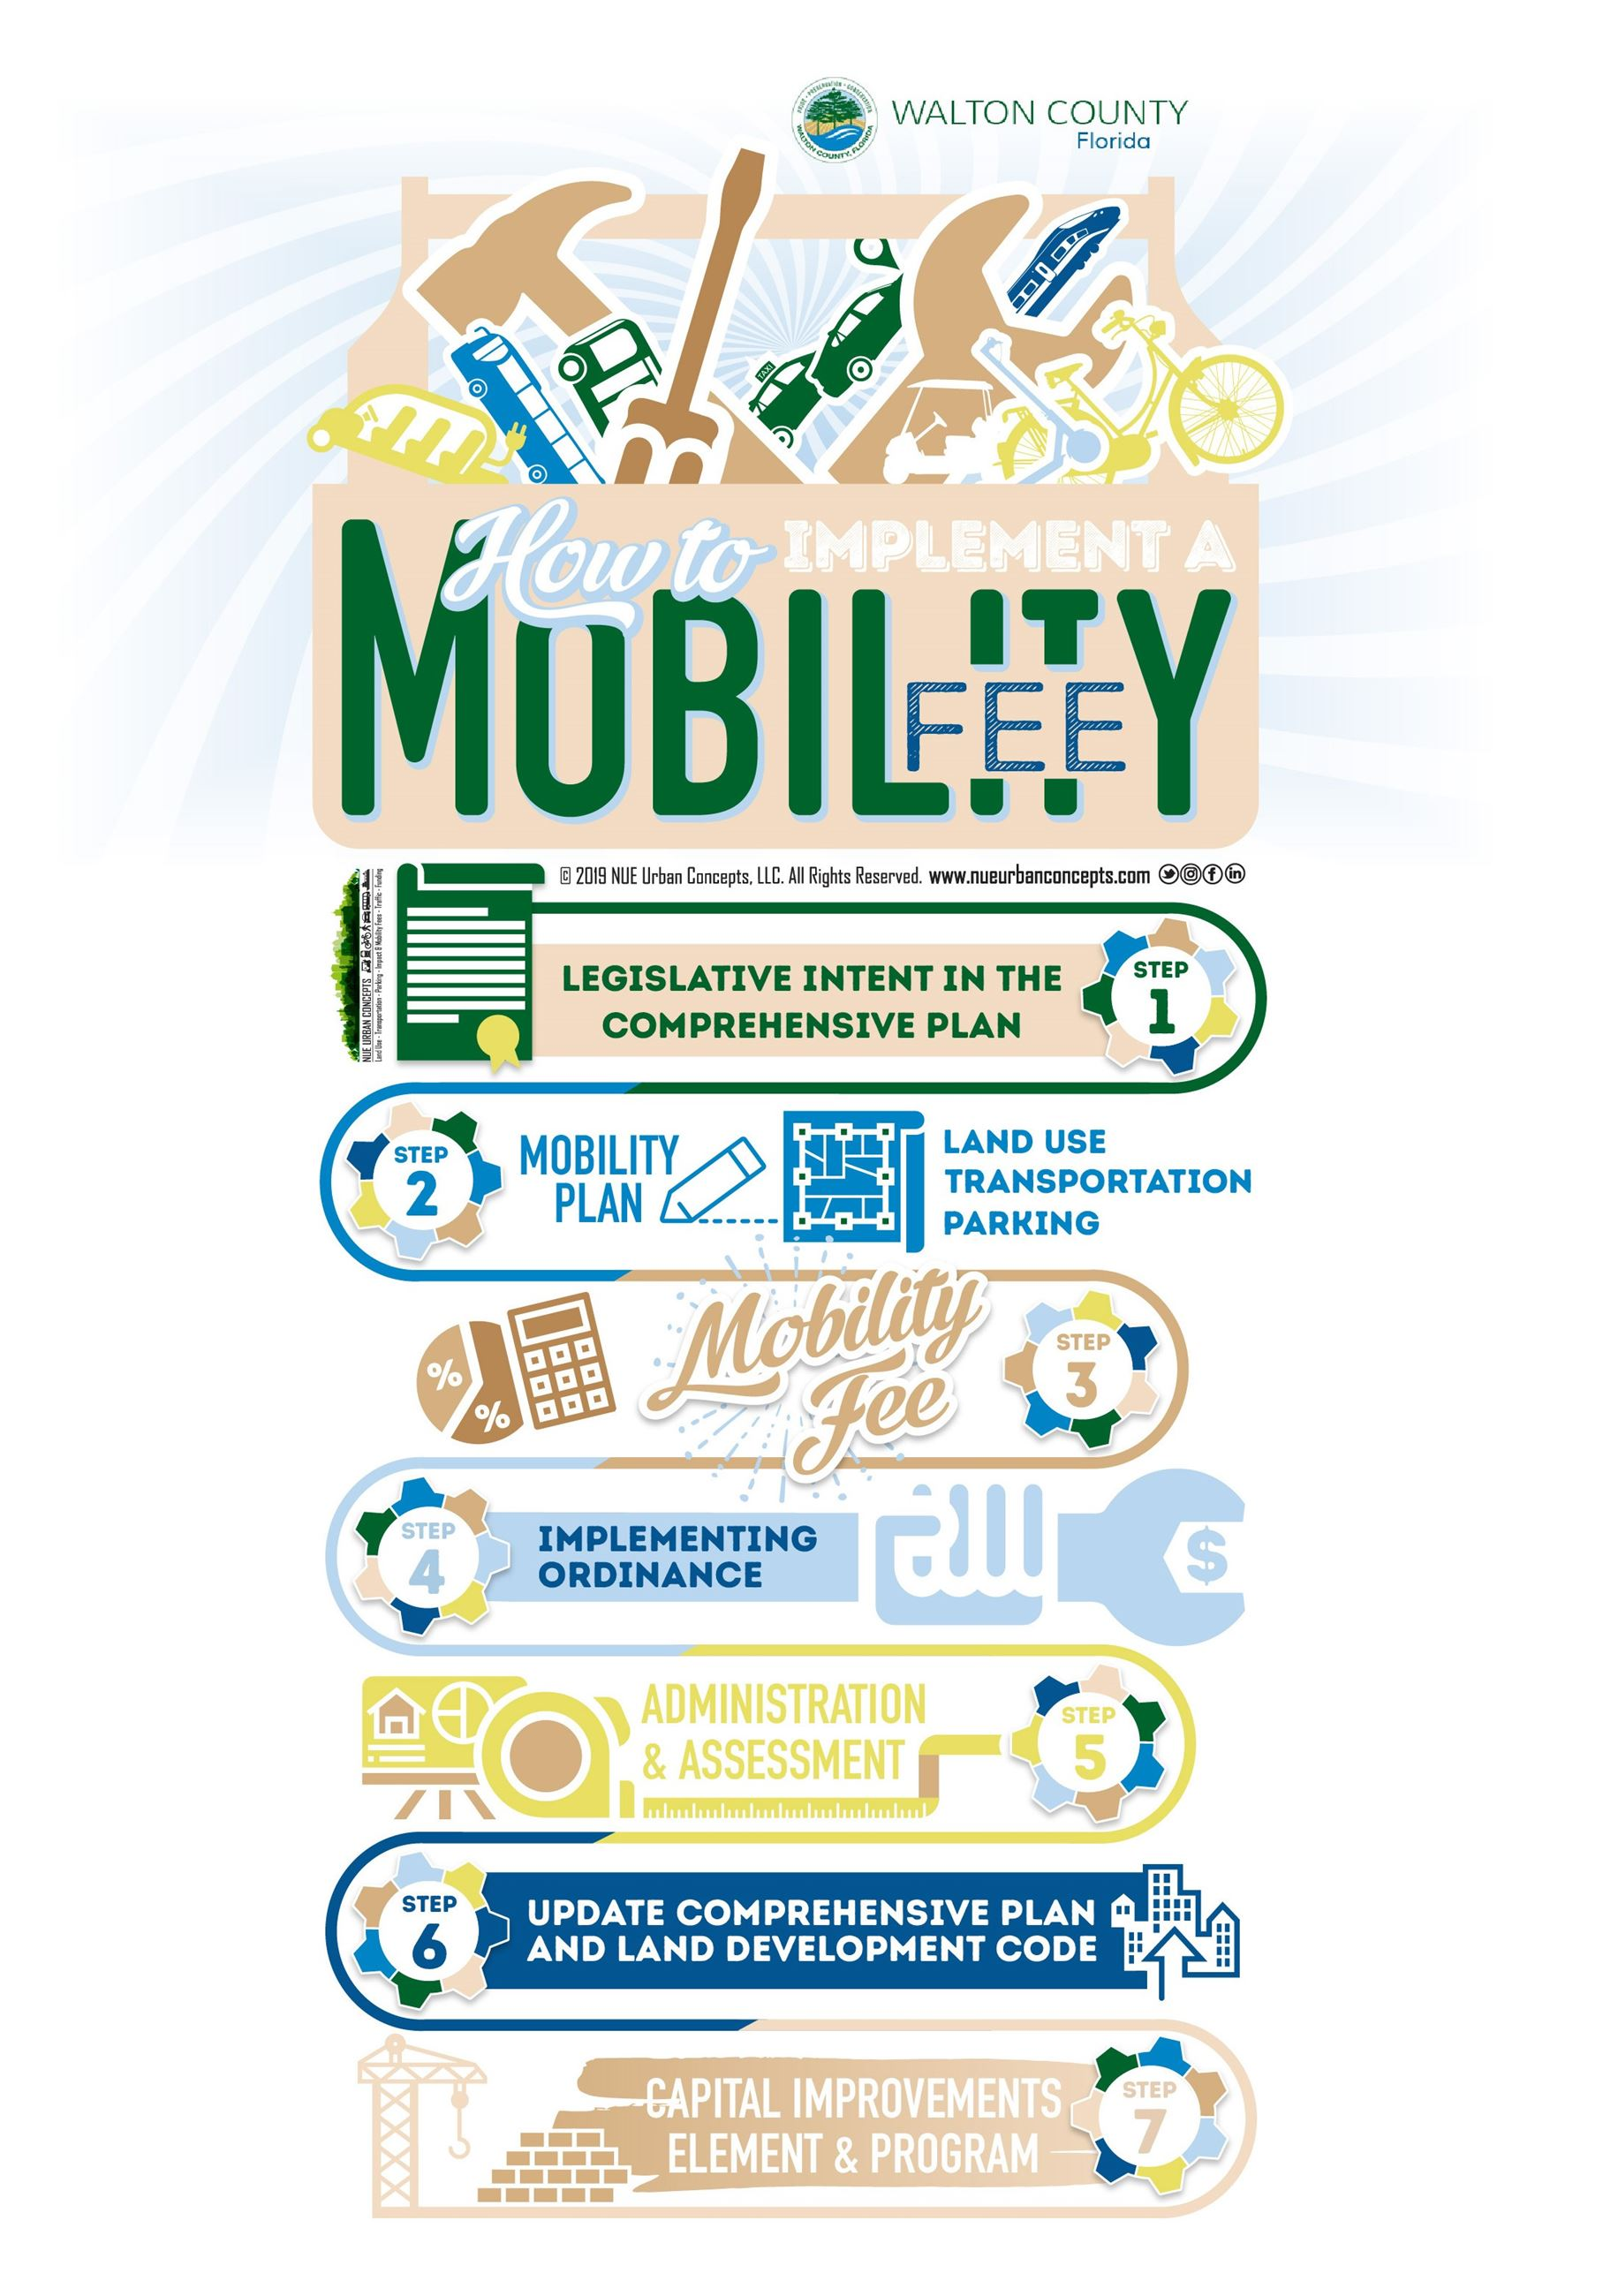 How to Implement a Mobility Fee